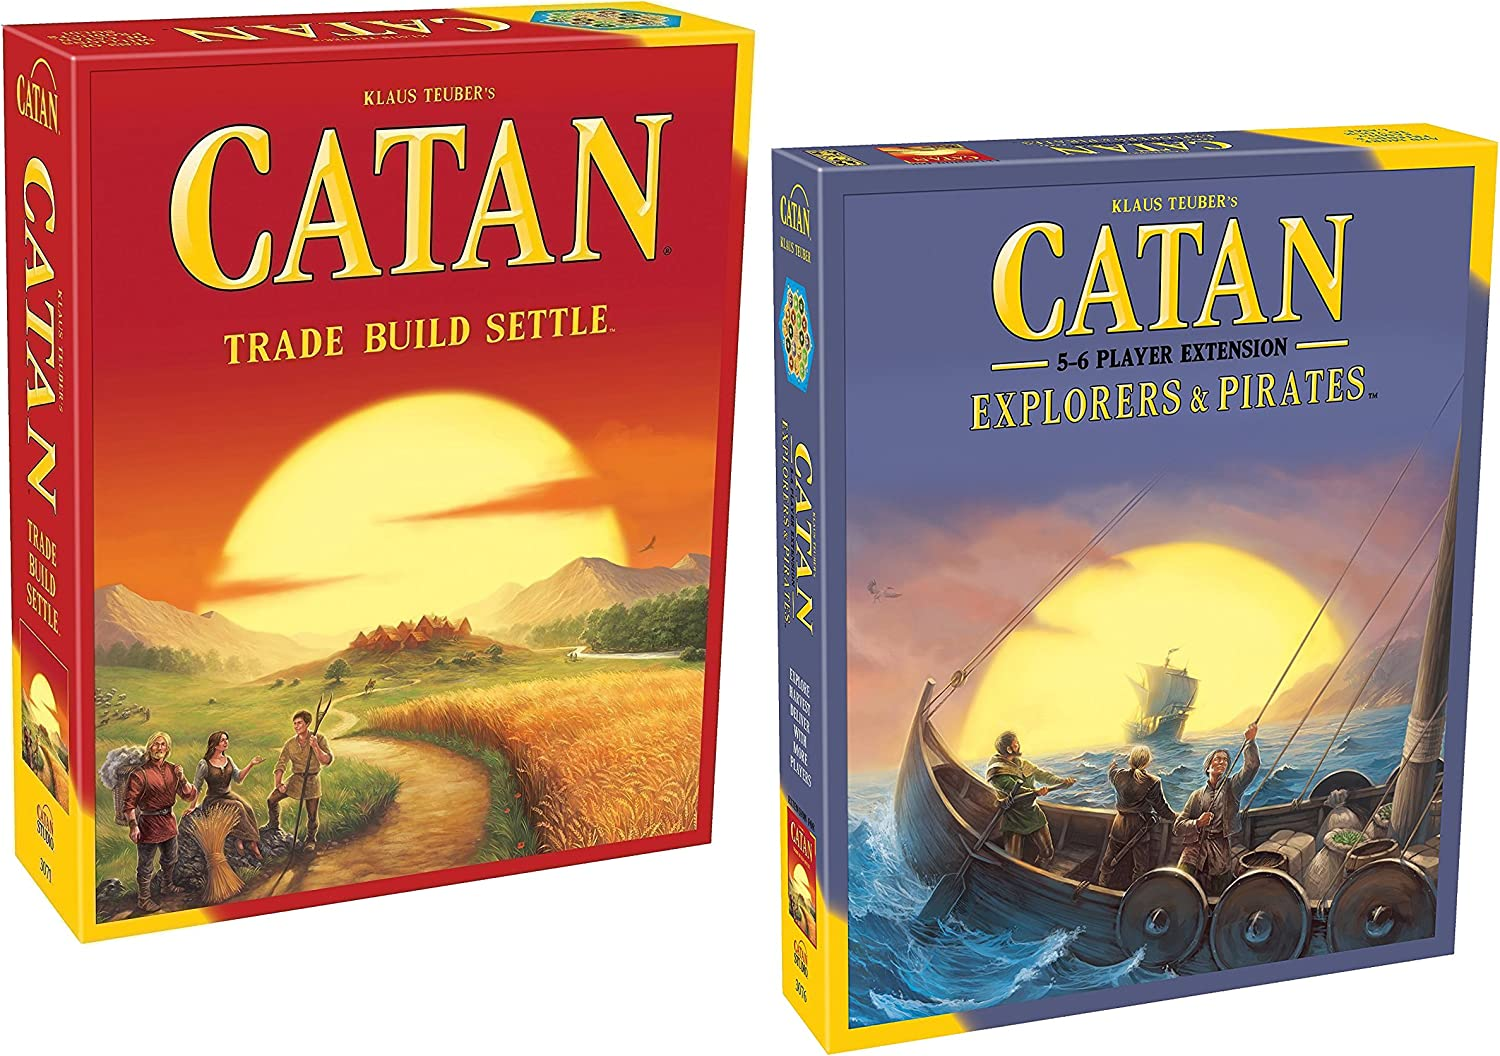 Catan 5ª edición con Catan: Explorers & Pirates 5-6 Player Extension 5th Edition: Amazon.es: Juguetes y juegos